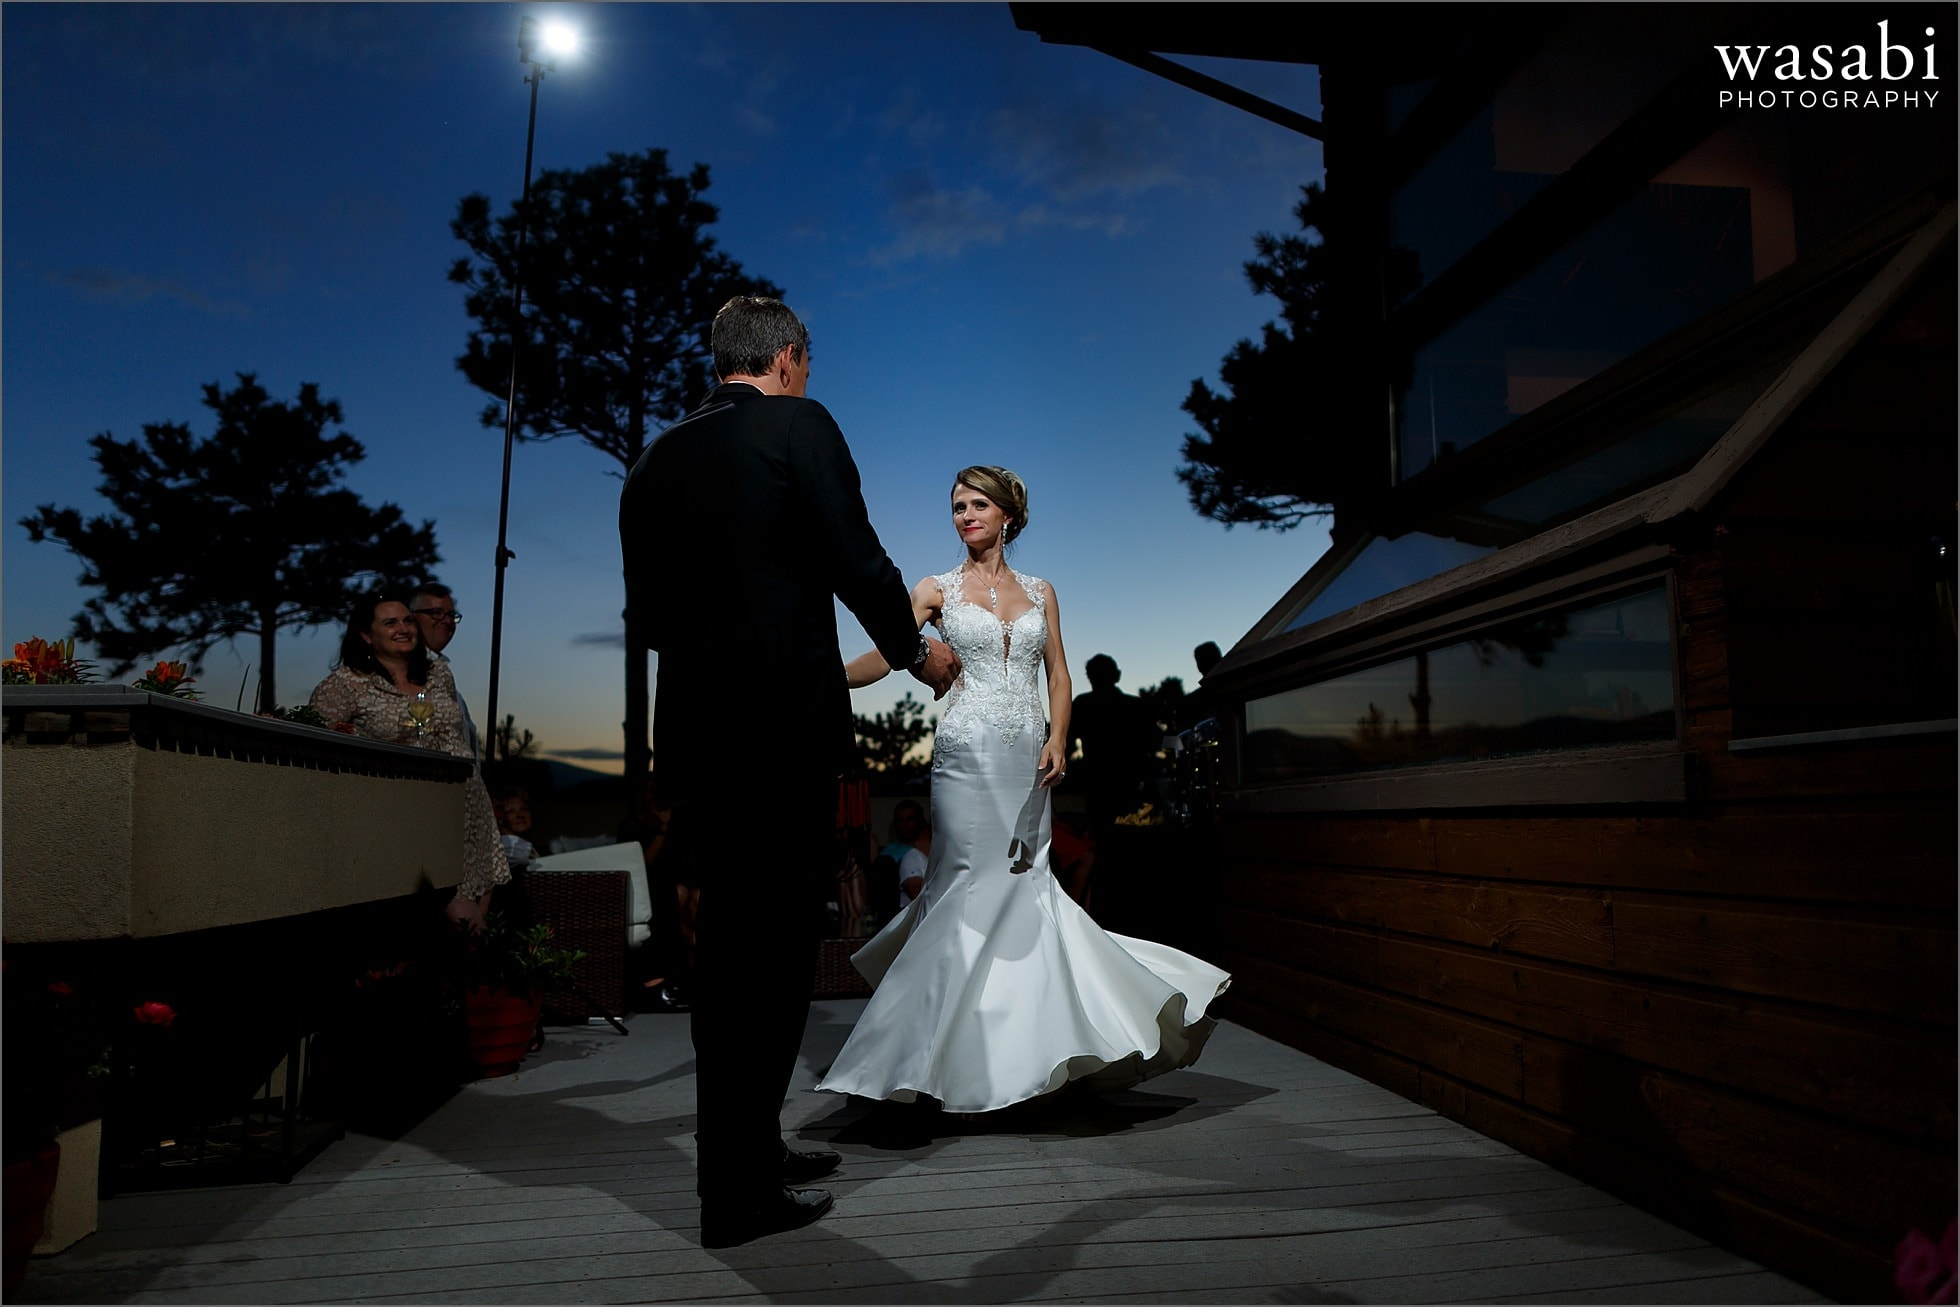 first dance at dusk during wedding reception at couples home on Lookout Mountain in Golden Colorado